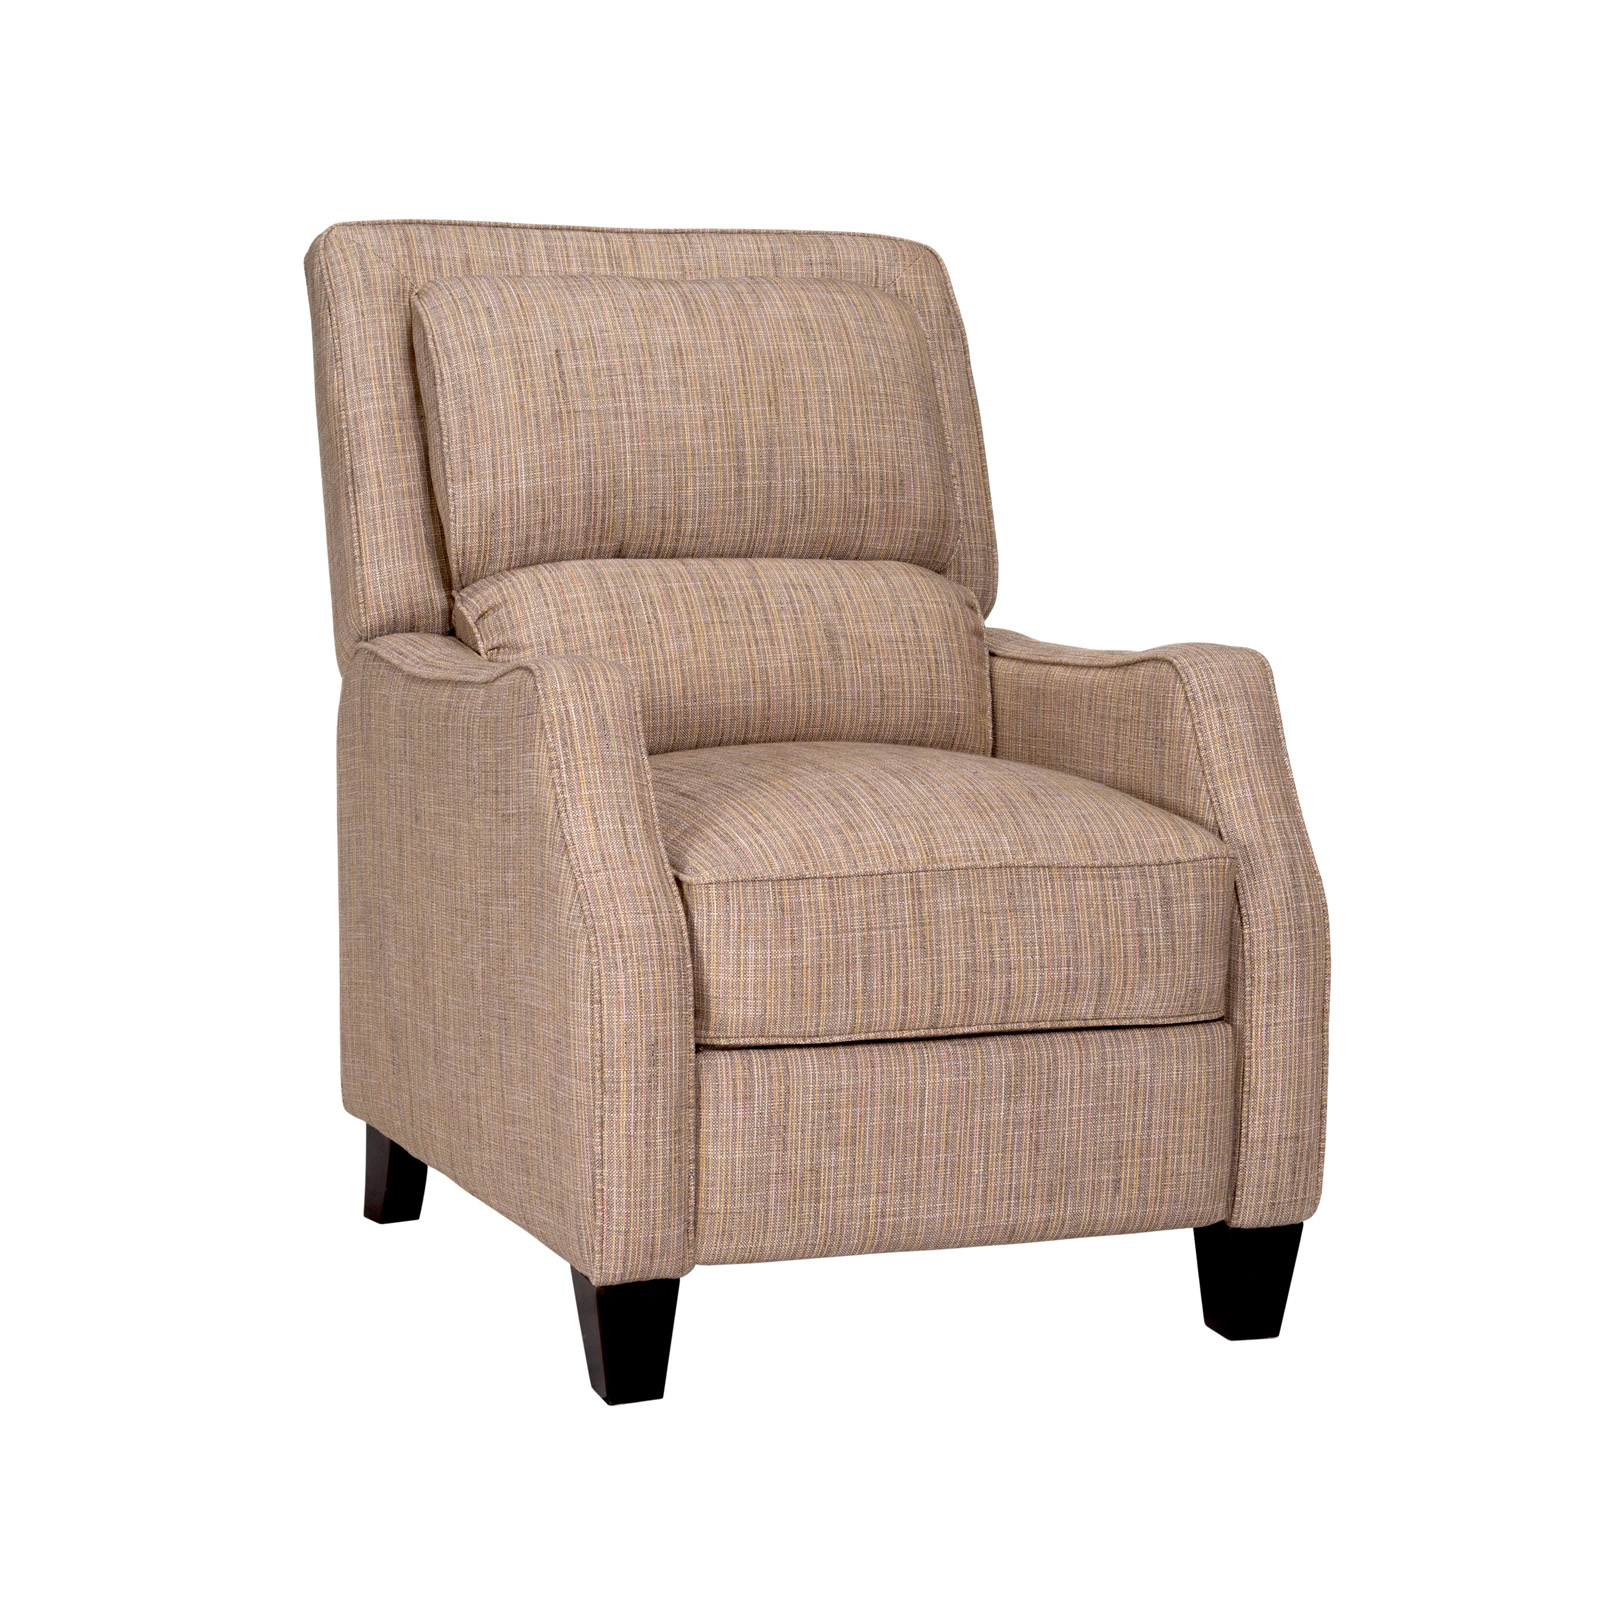 QUICK VIEW  sc 1 st  Hayneedle & 25 - 30 in. Recliners | Hayneedle islam-shia.org